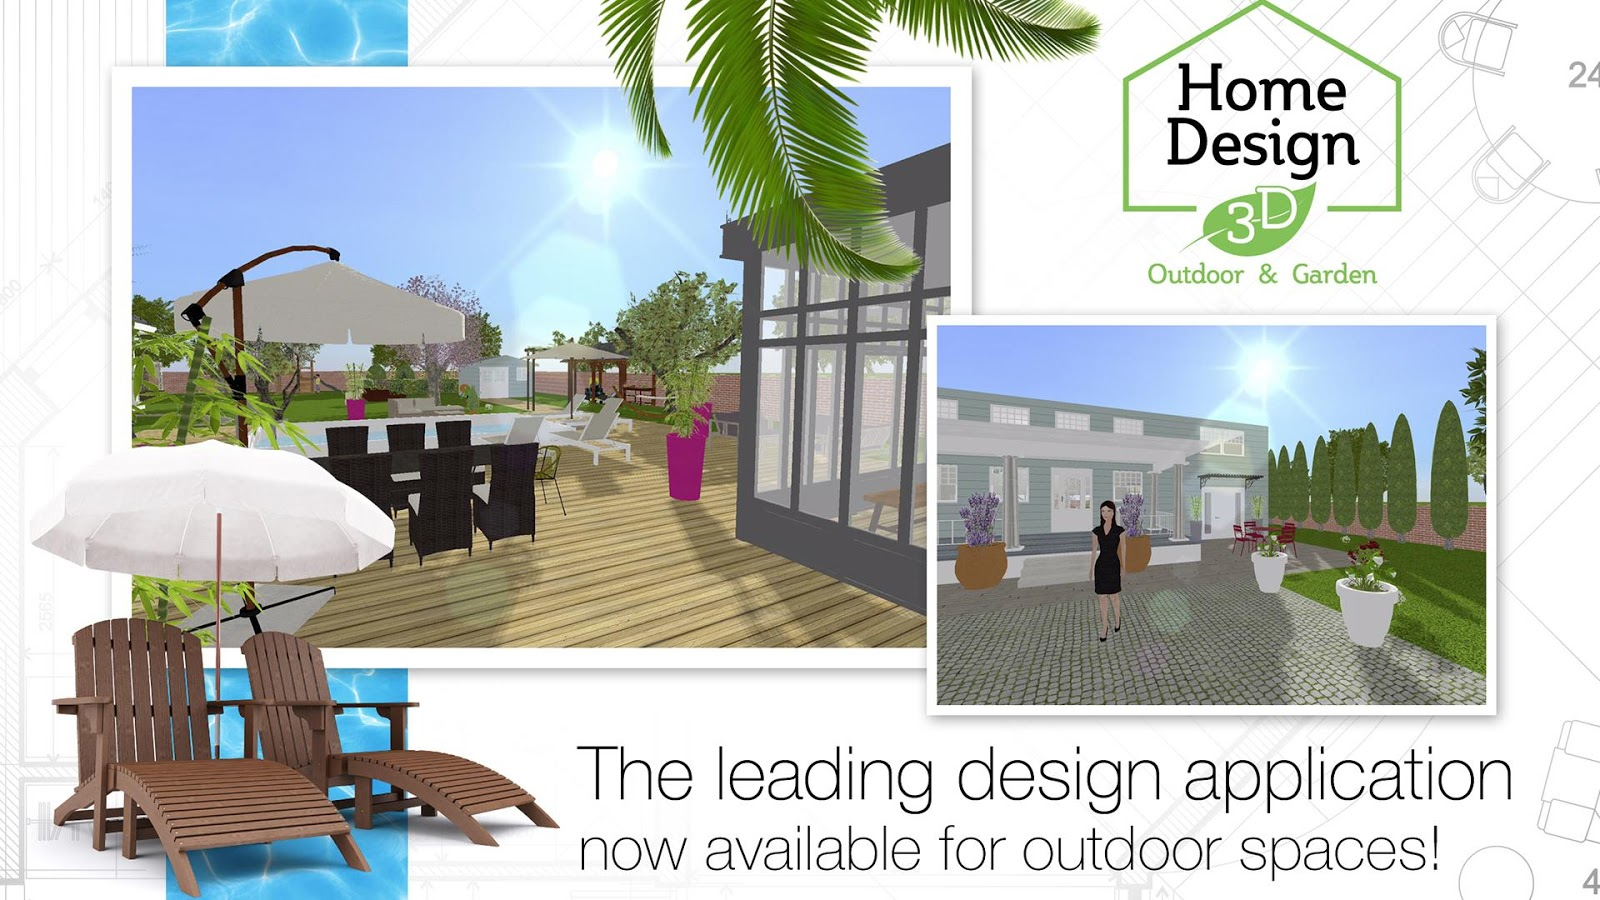 Home design 3d outdoor garden android apps on google play for Interieur online shop